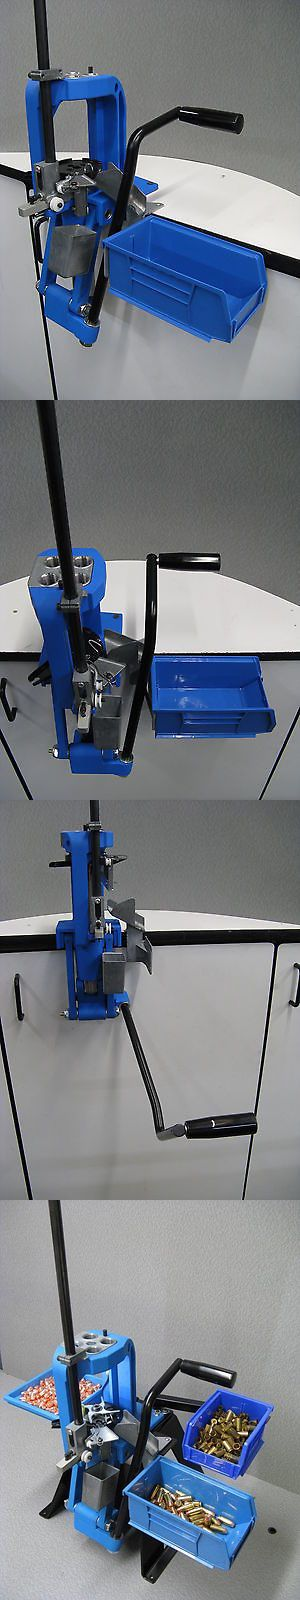 Presses and Accessories 71120: Ergo™ Lever For Dillon Rl 550 B Reloading Press Blem BUY IT NOW ONLY: $30.0